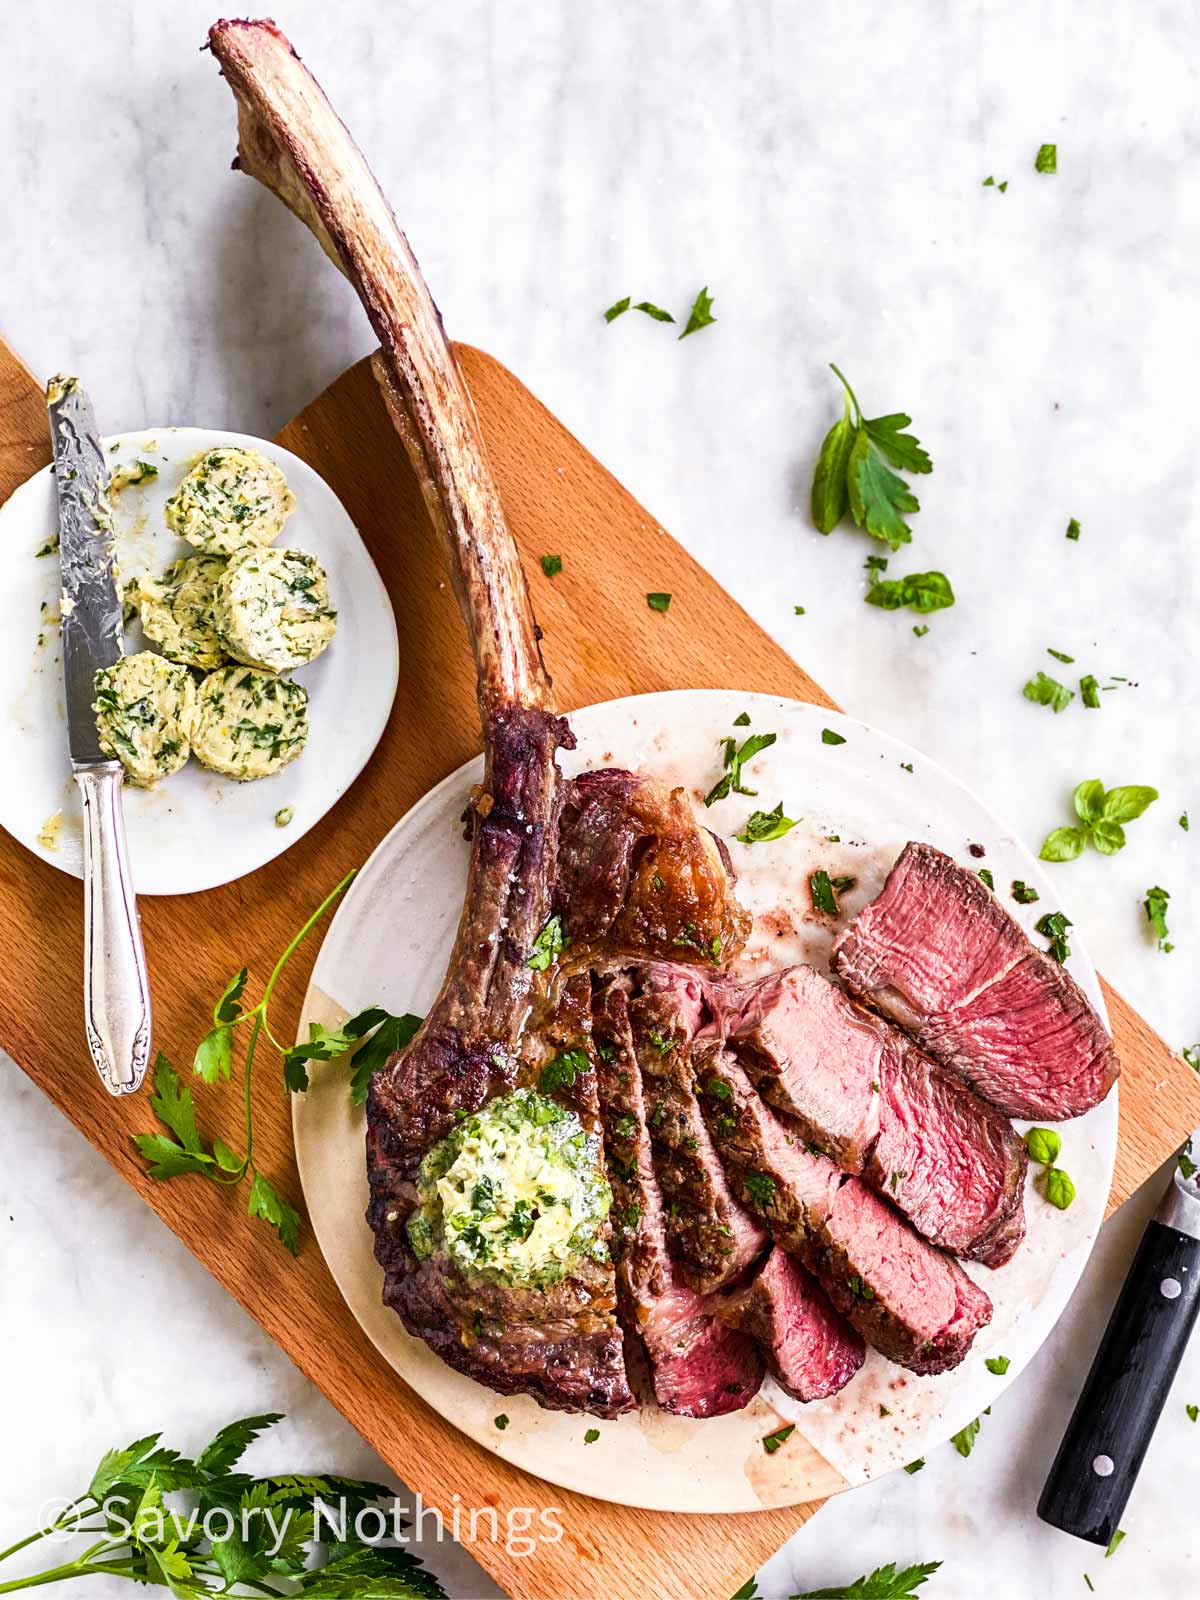 overhead view of sliced tomahawk steak on wooden board with garlic herb butter and fresh parsley